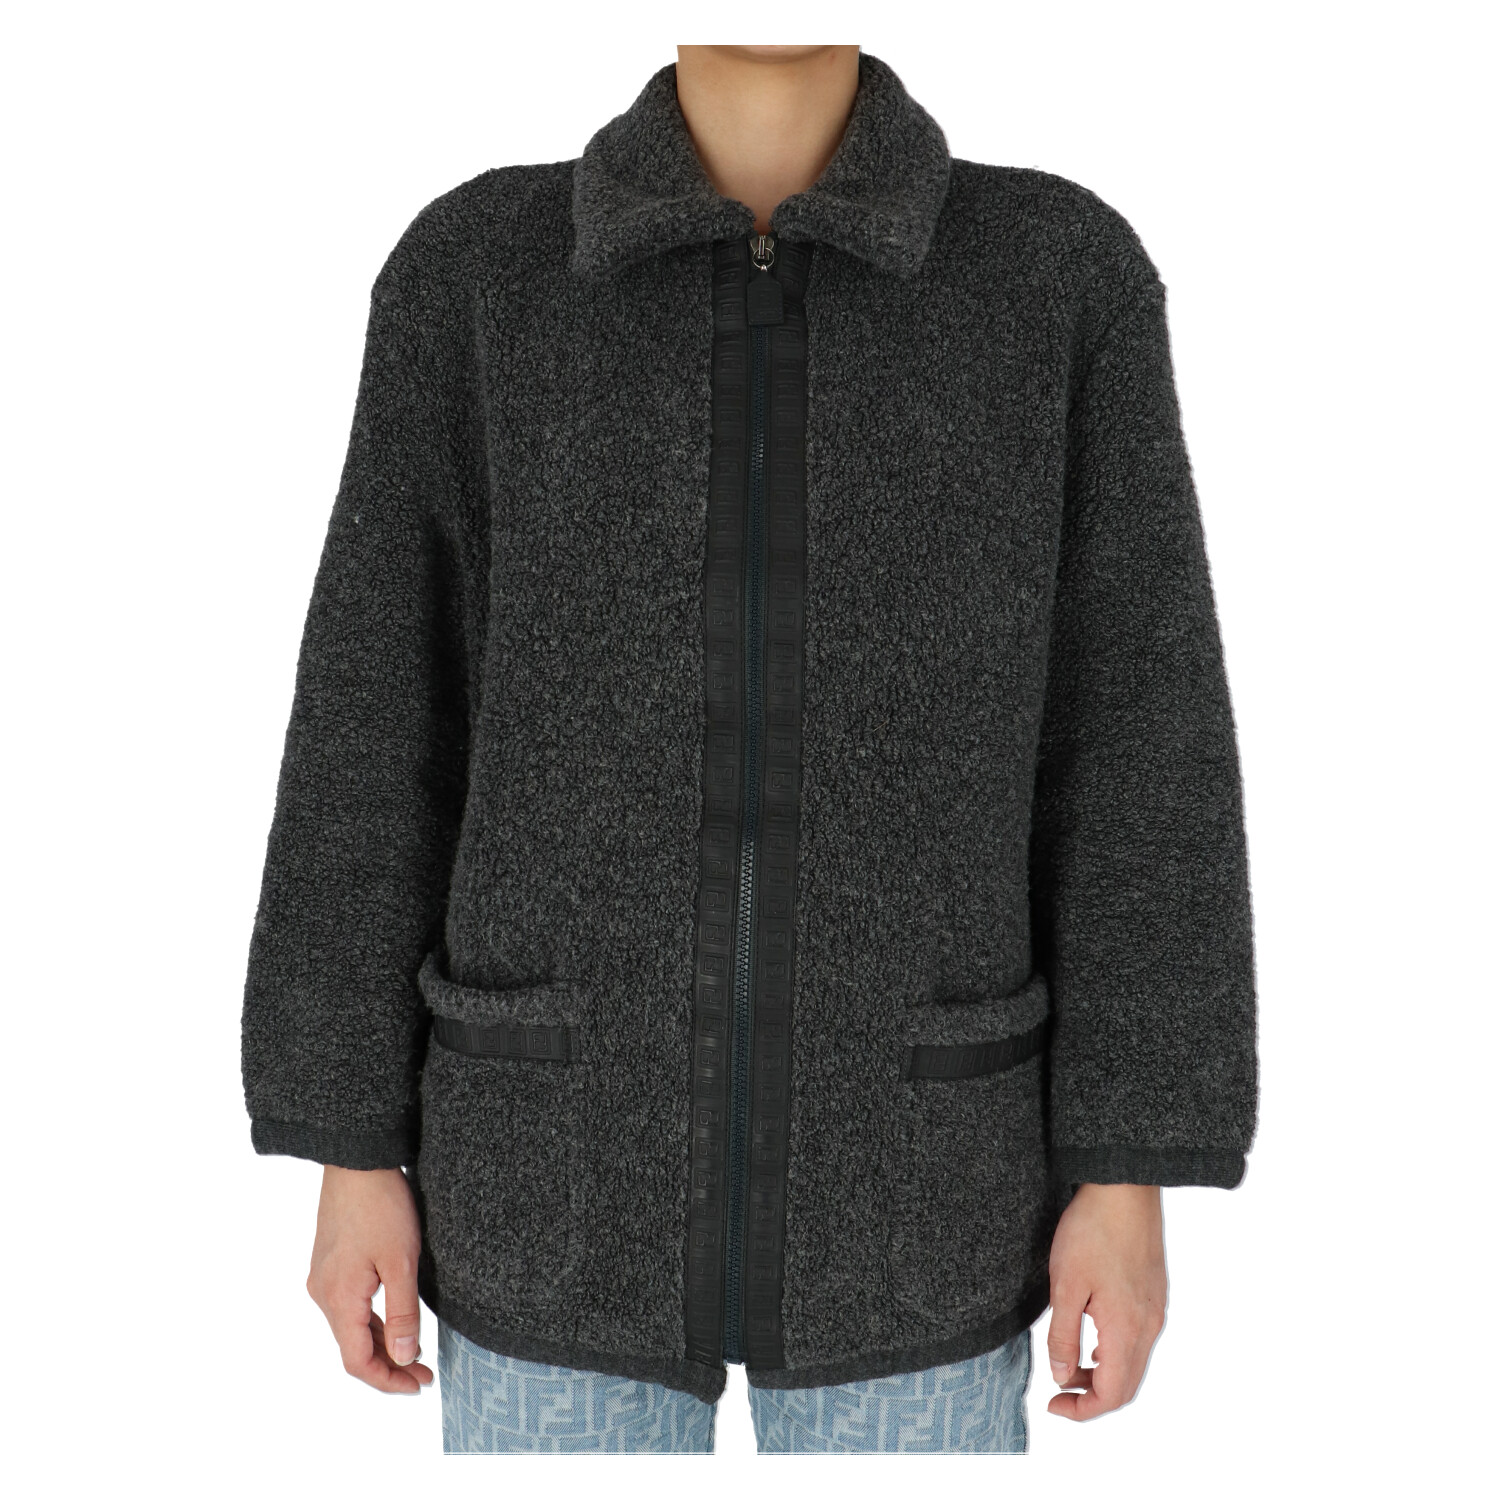 Fendi Grey Zucca Wool Sweater